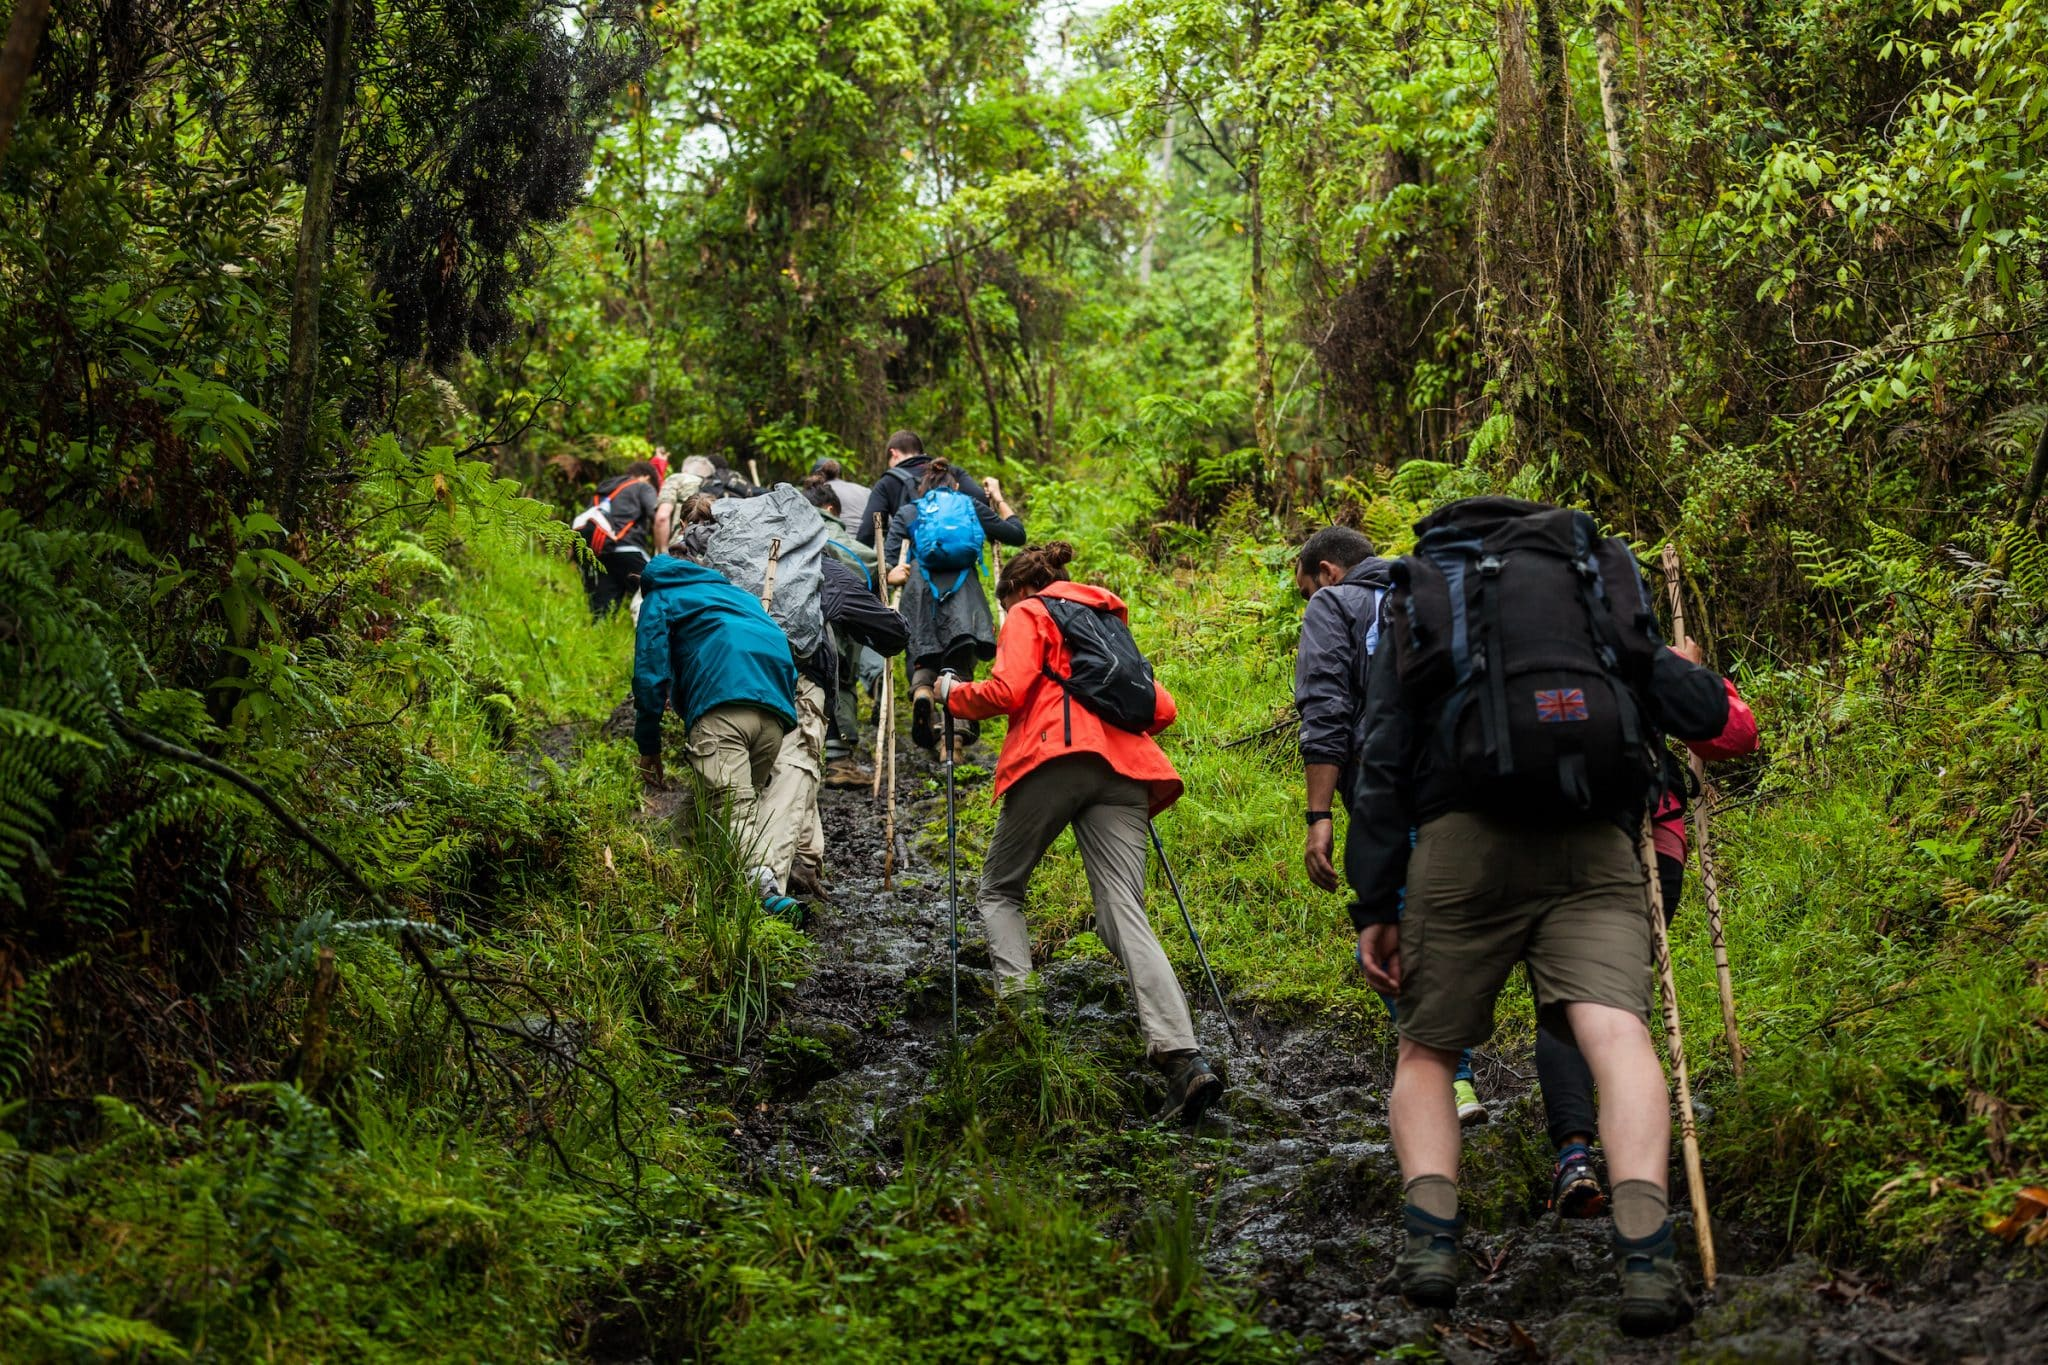 Democratic Republic of Congo - March 10, 2018. A group of people hiking up the volcano in Virunga Park